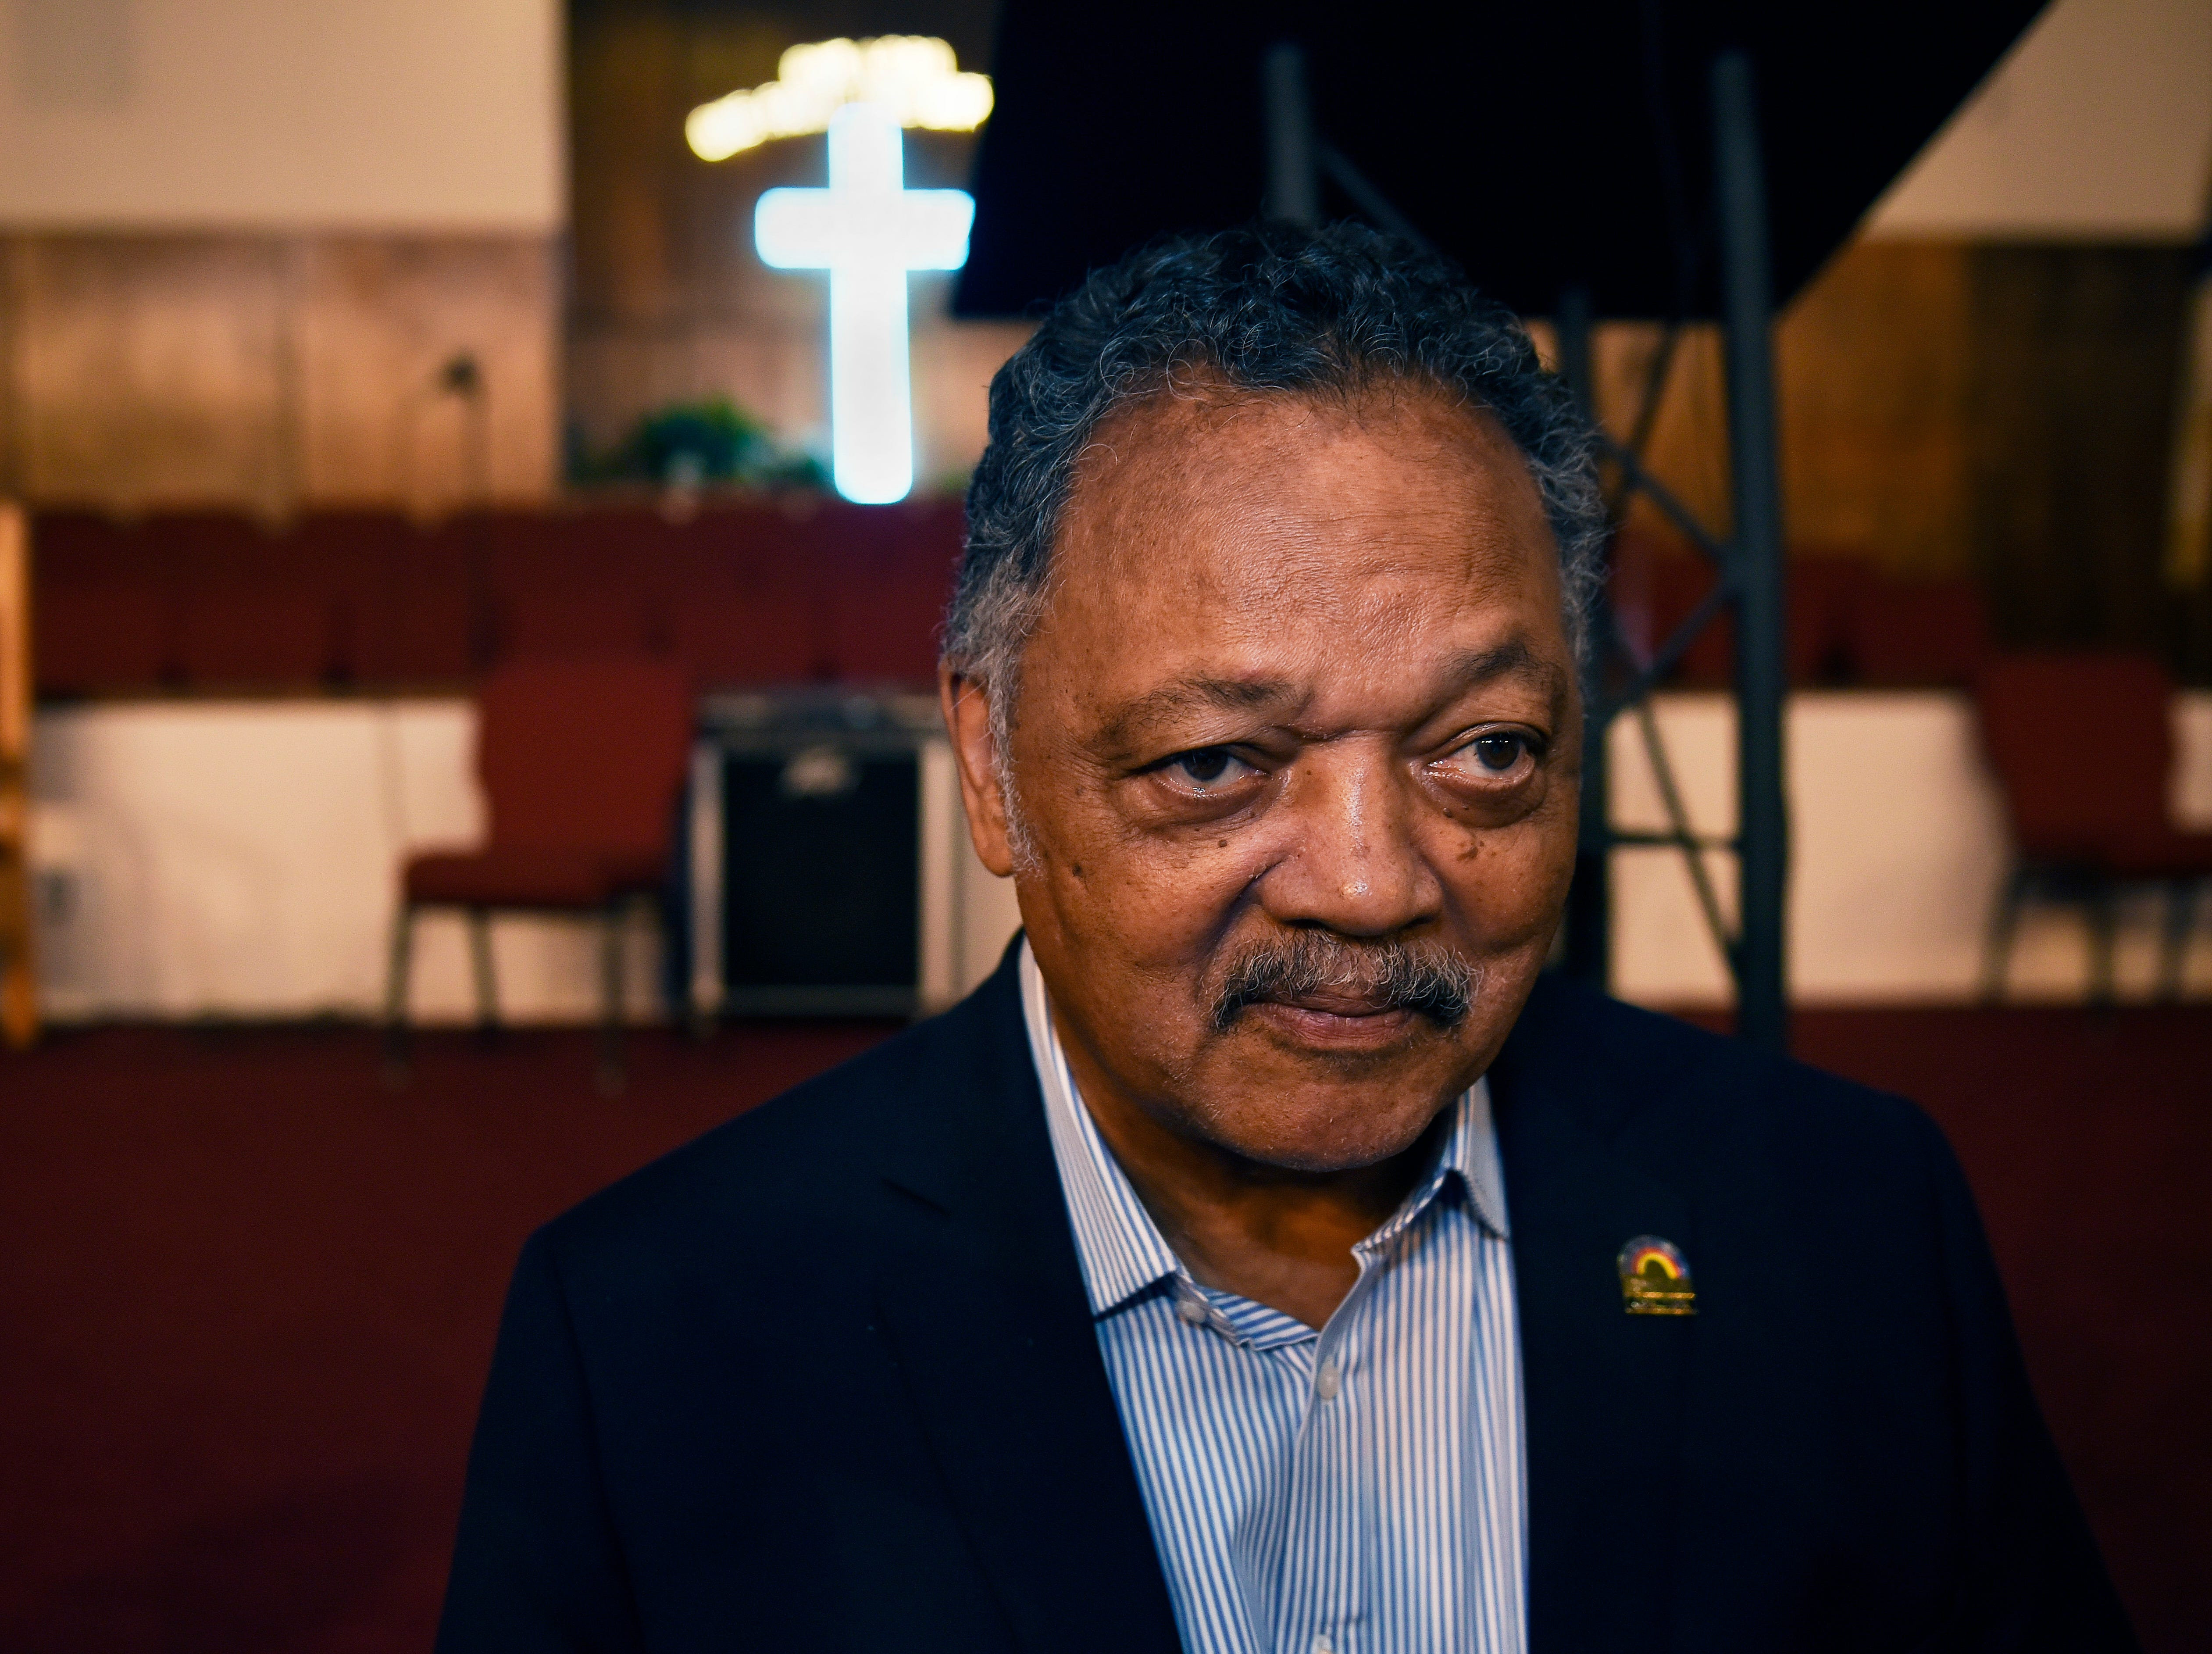 The Rev. Jesse Jackson talks to reporters about the life of Aretha Franklin in New Bethel Baptist Church in Detroit, Thursday, Aug. 16, 2018.